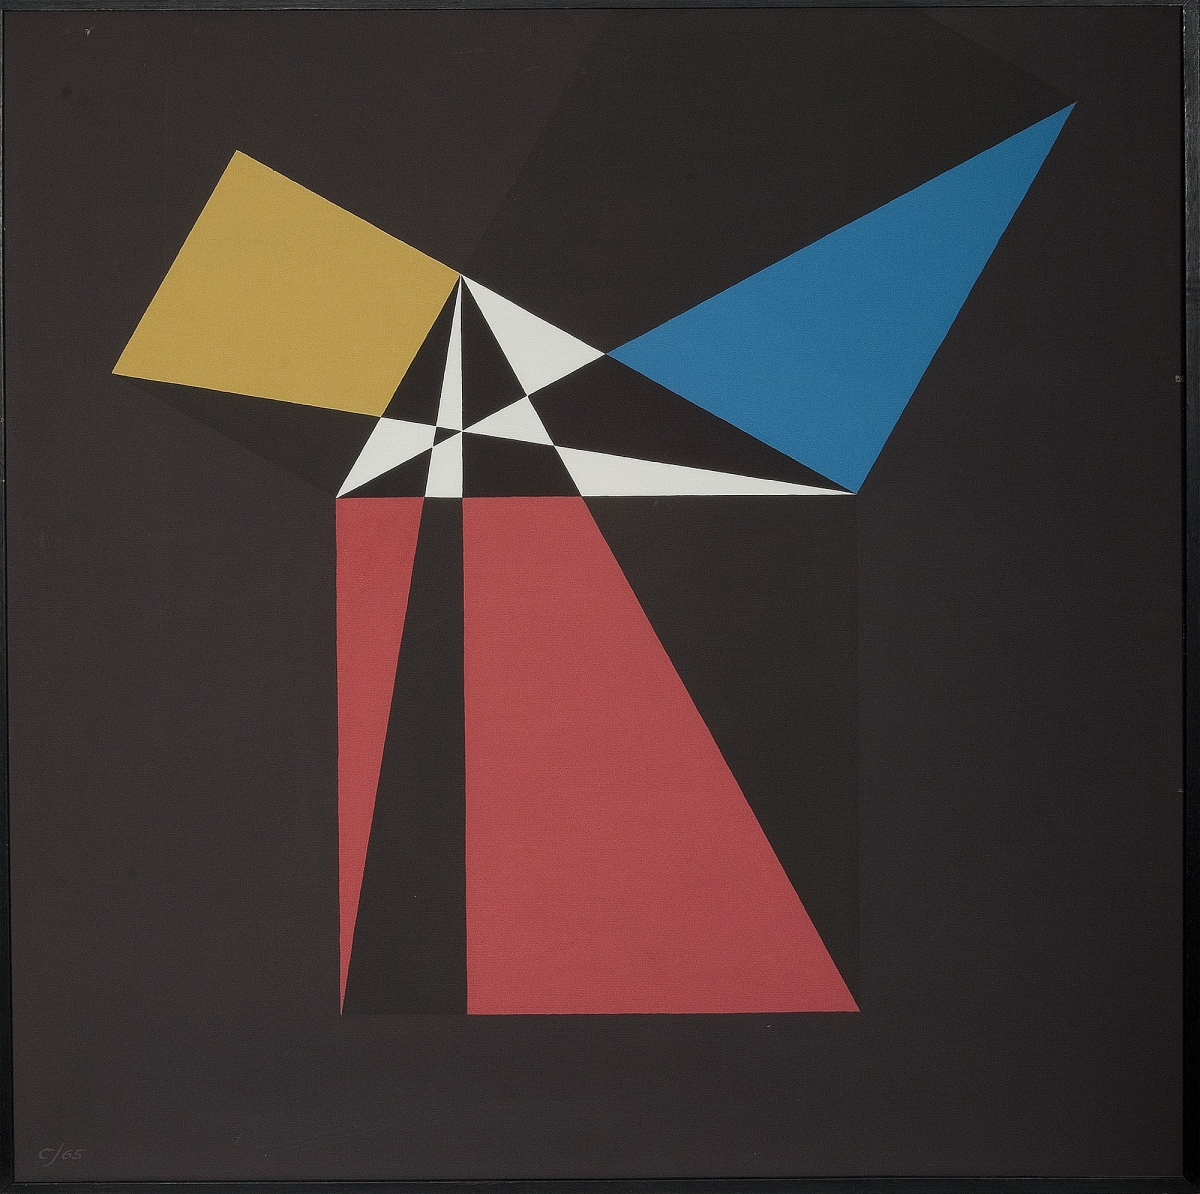 Crockett Johnson, Proof of the Pythagorean Theorem (Euclid), 1965